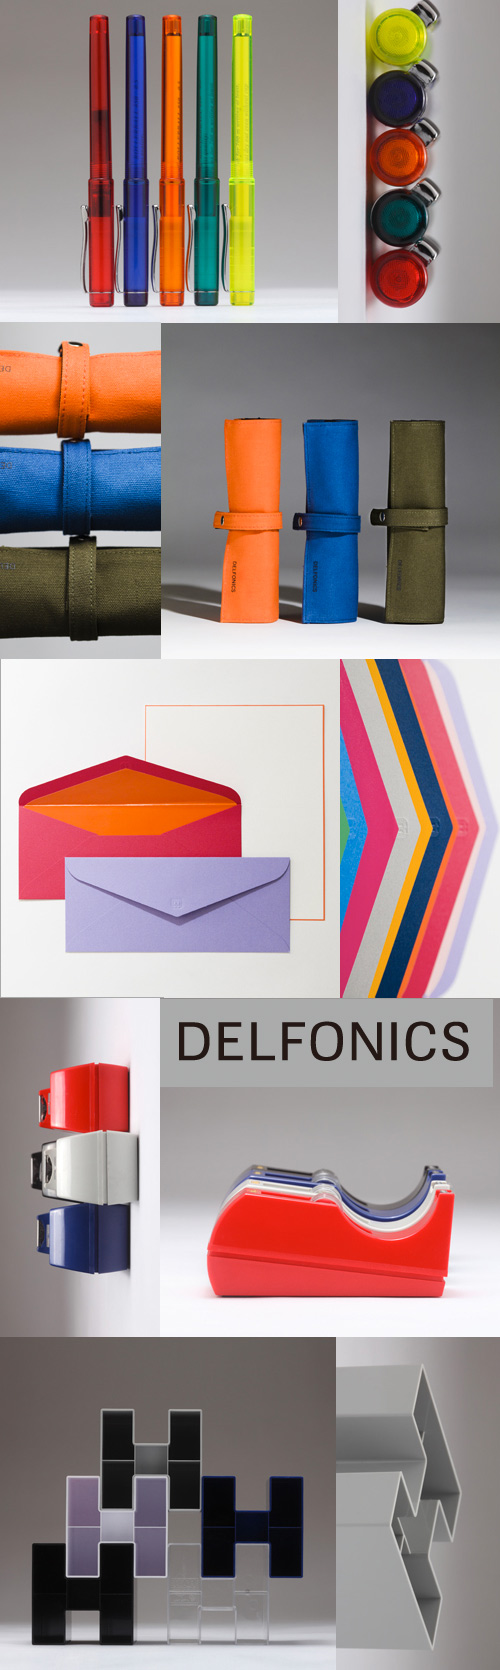 delfonics office supplies Delfonics for Your Office